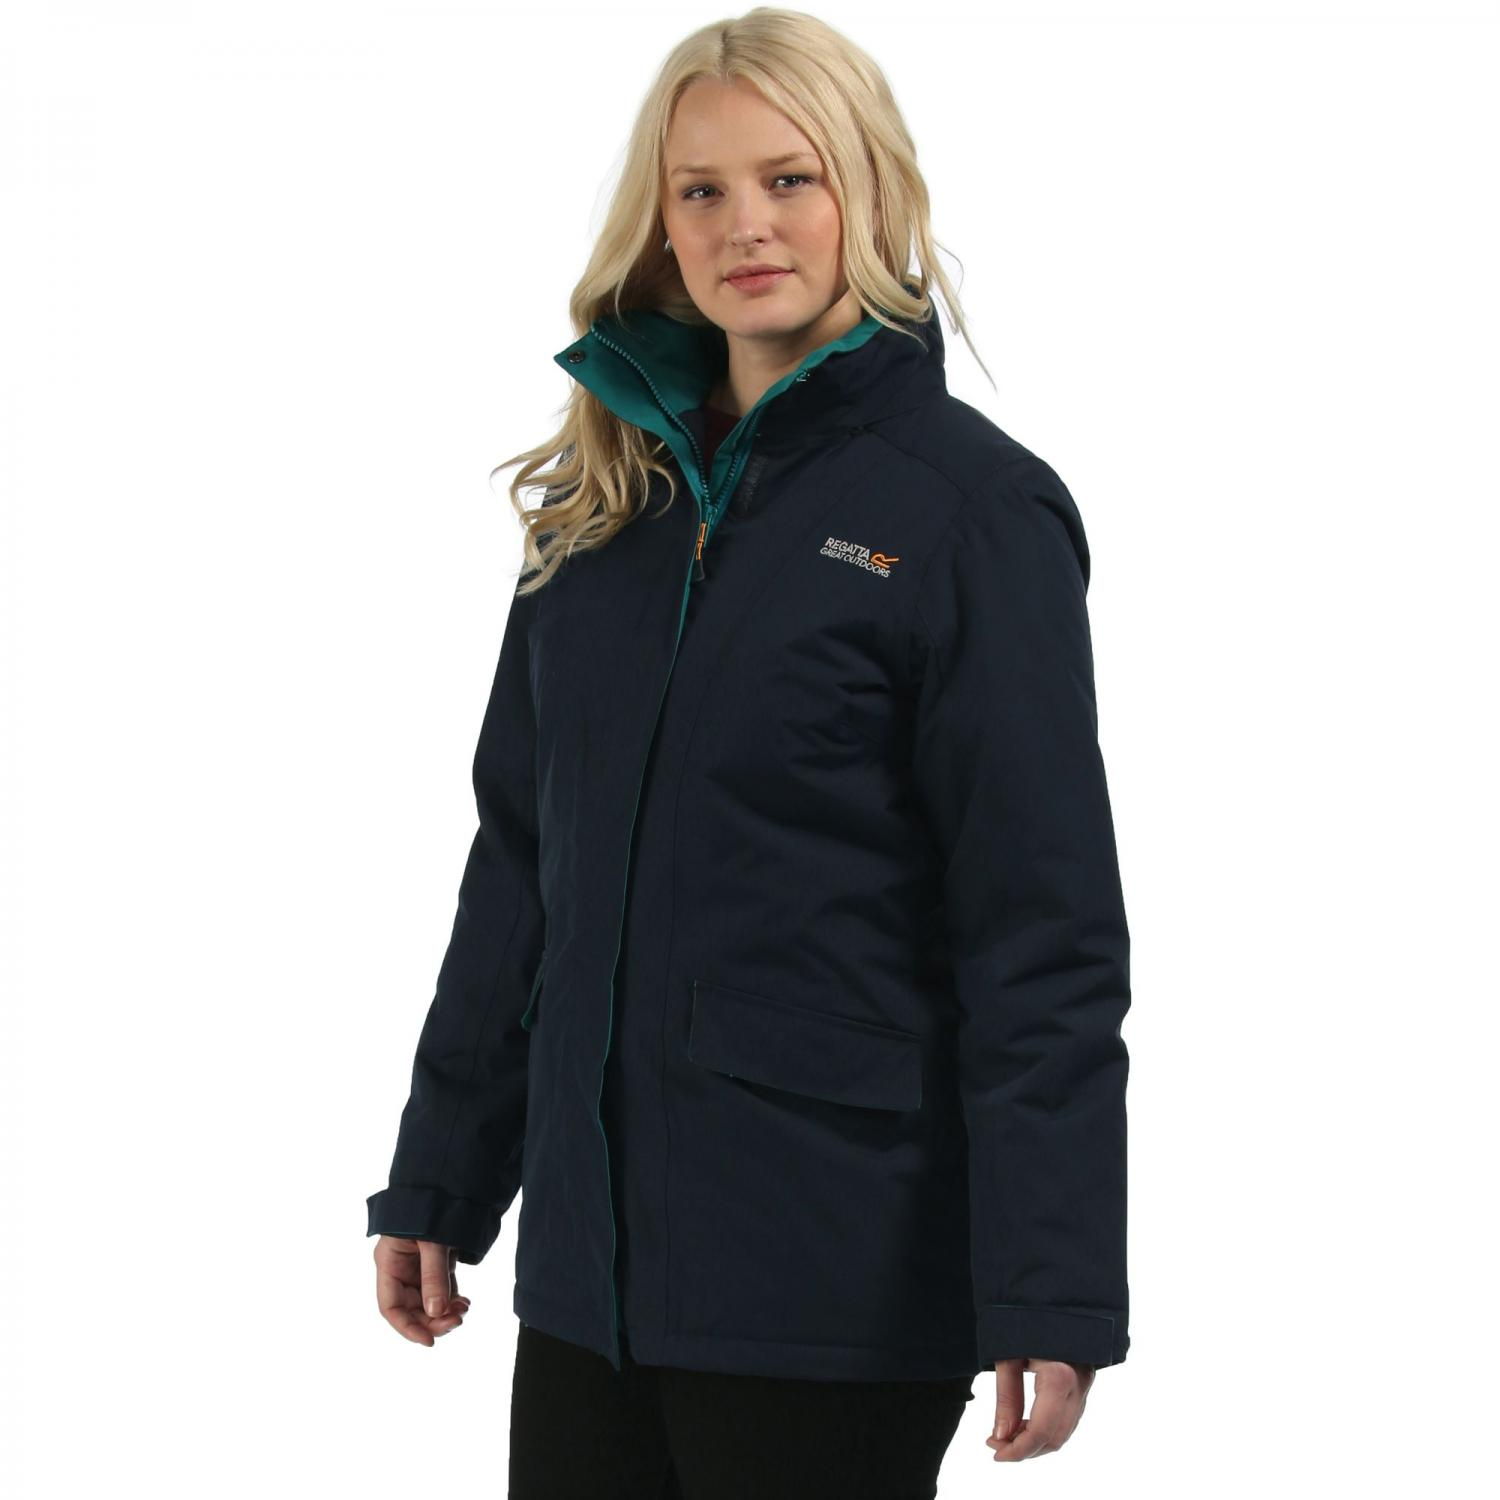 Blanchet Jacket Navy  Deep Lake